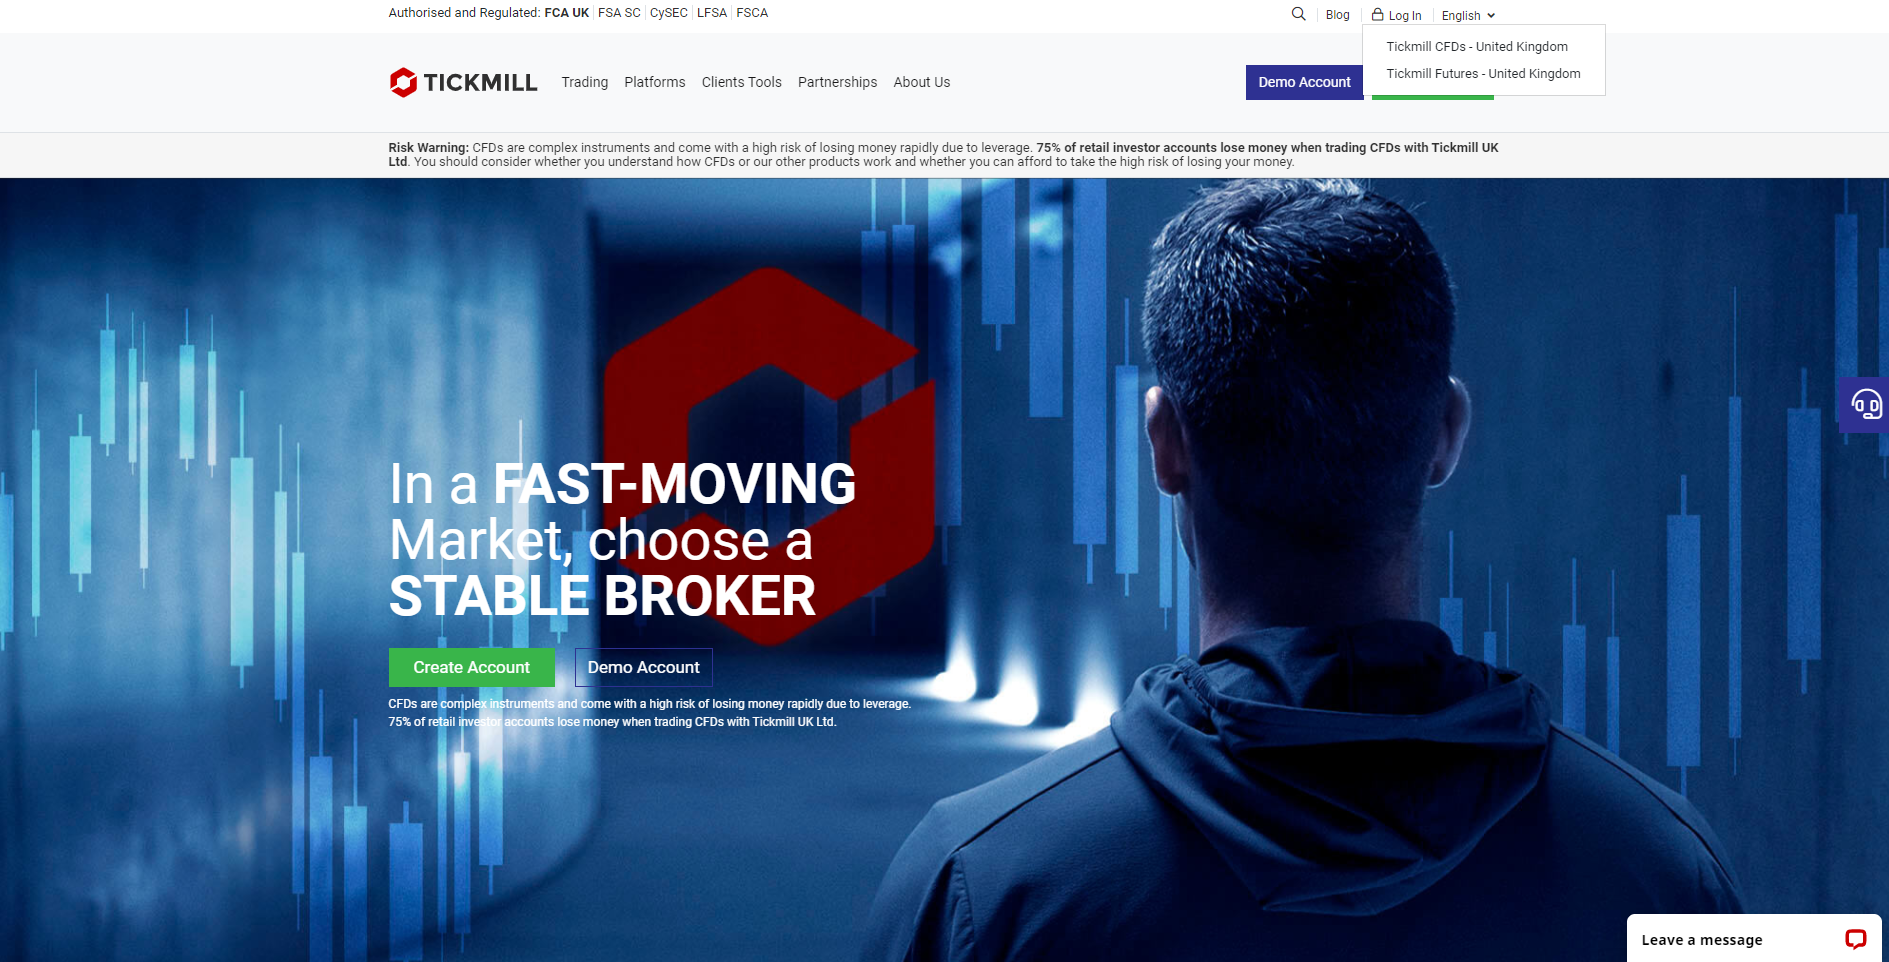 Official website of the forex broker Tickmill in the UK